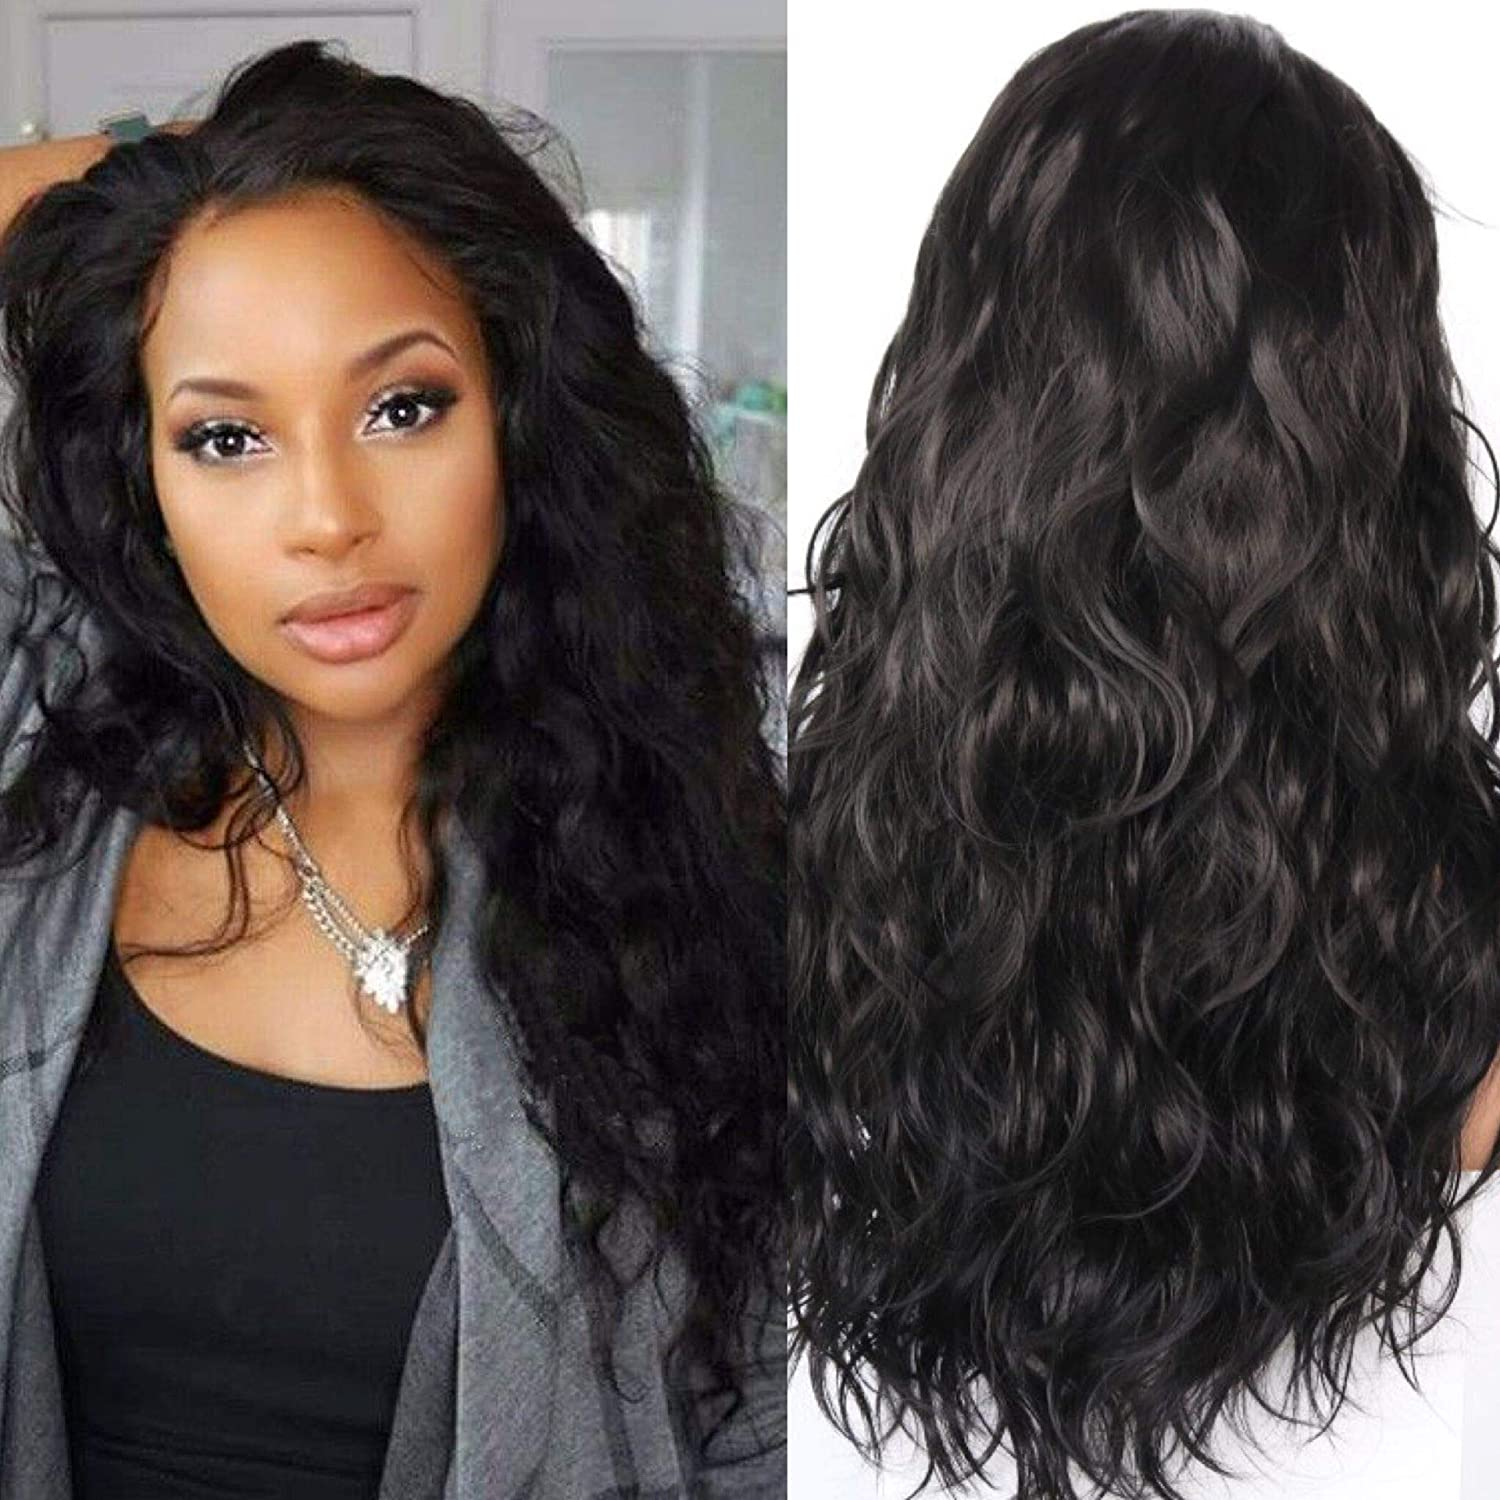 Amazon Com Wennisi Black Lace Front Wigs Loose Curly Synthetic Wigs For Black Women Natural Hair Wigs With Baby Hair Free Part High Temperature Synthetic Hair Beauty